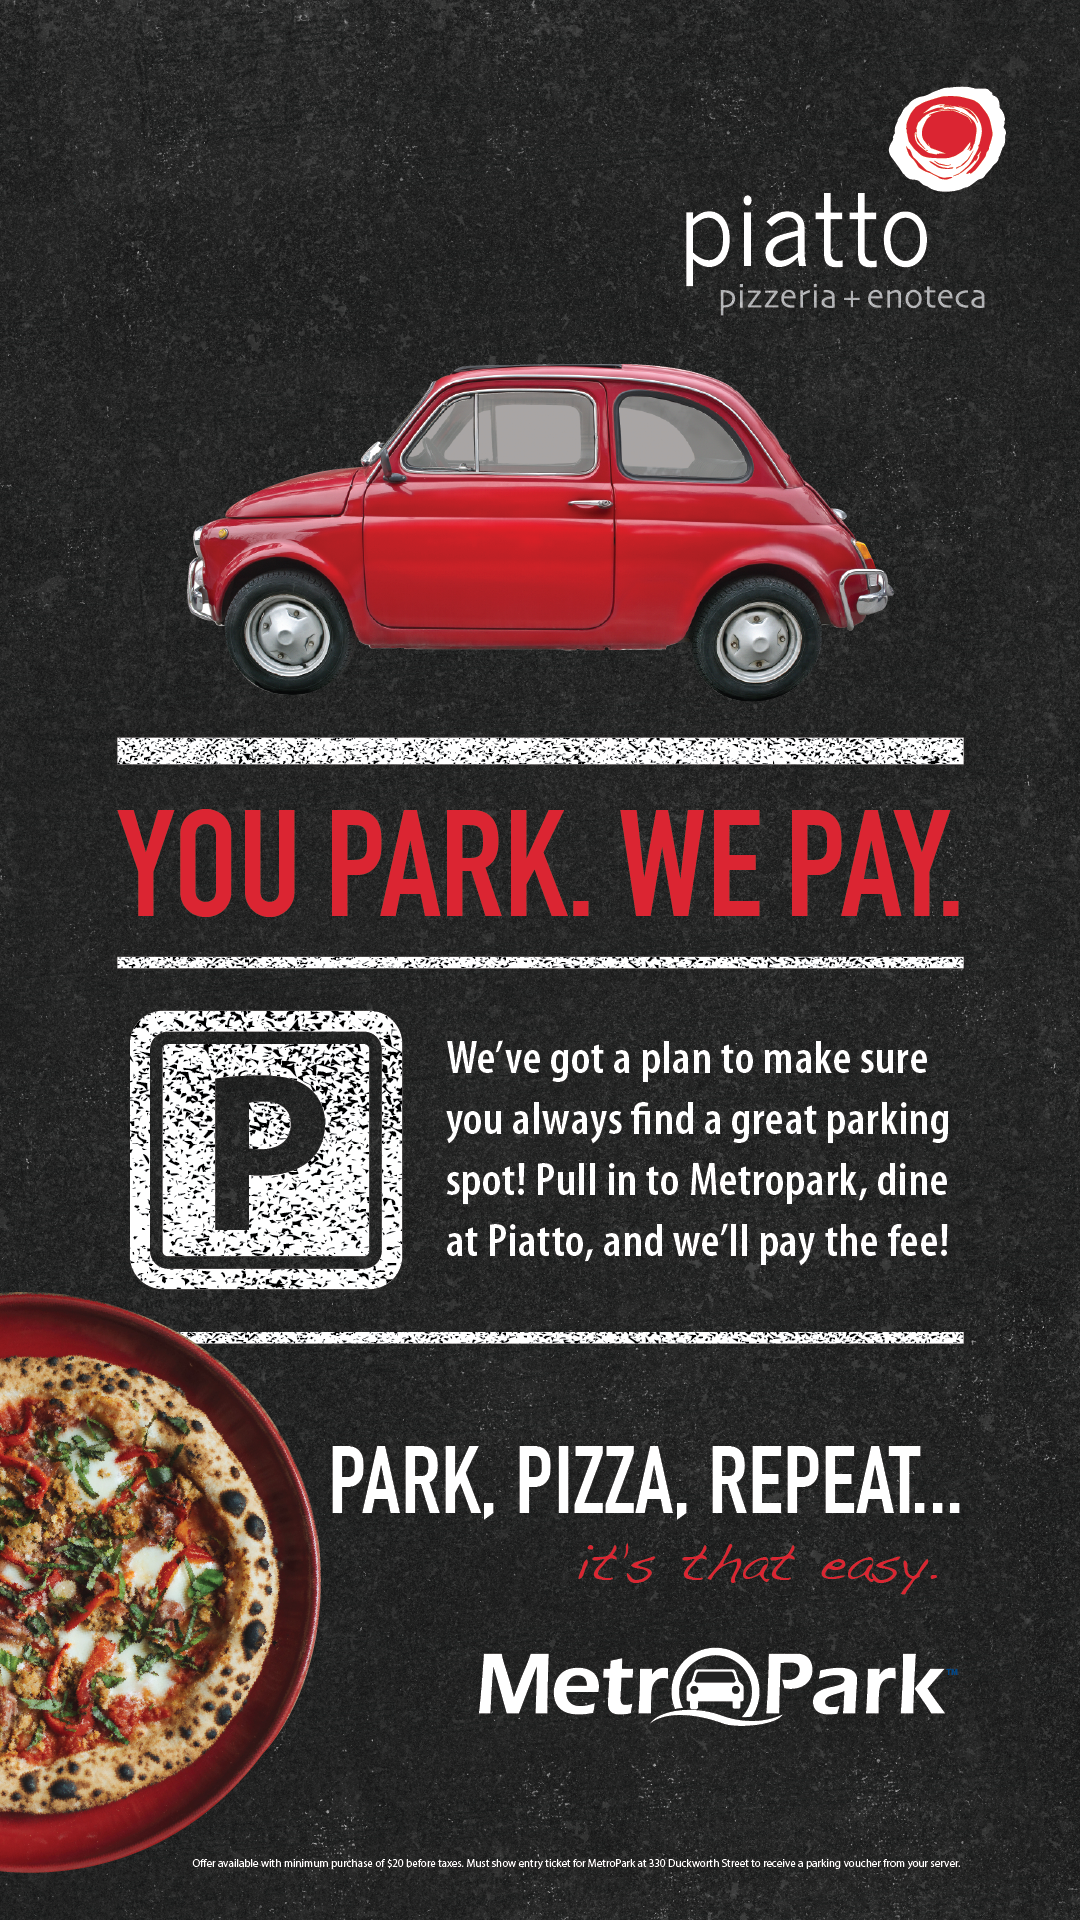 Piatto-DuckworthParkingPromo-1080x1920.png